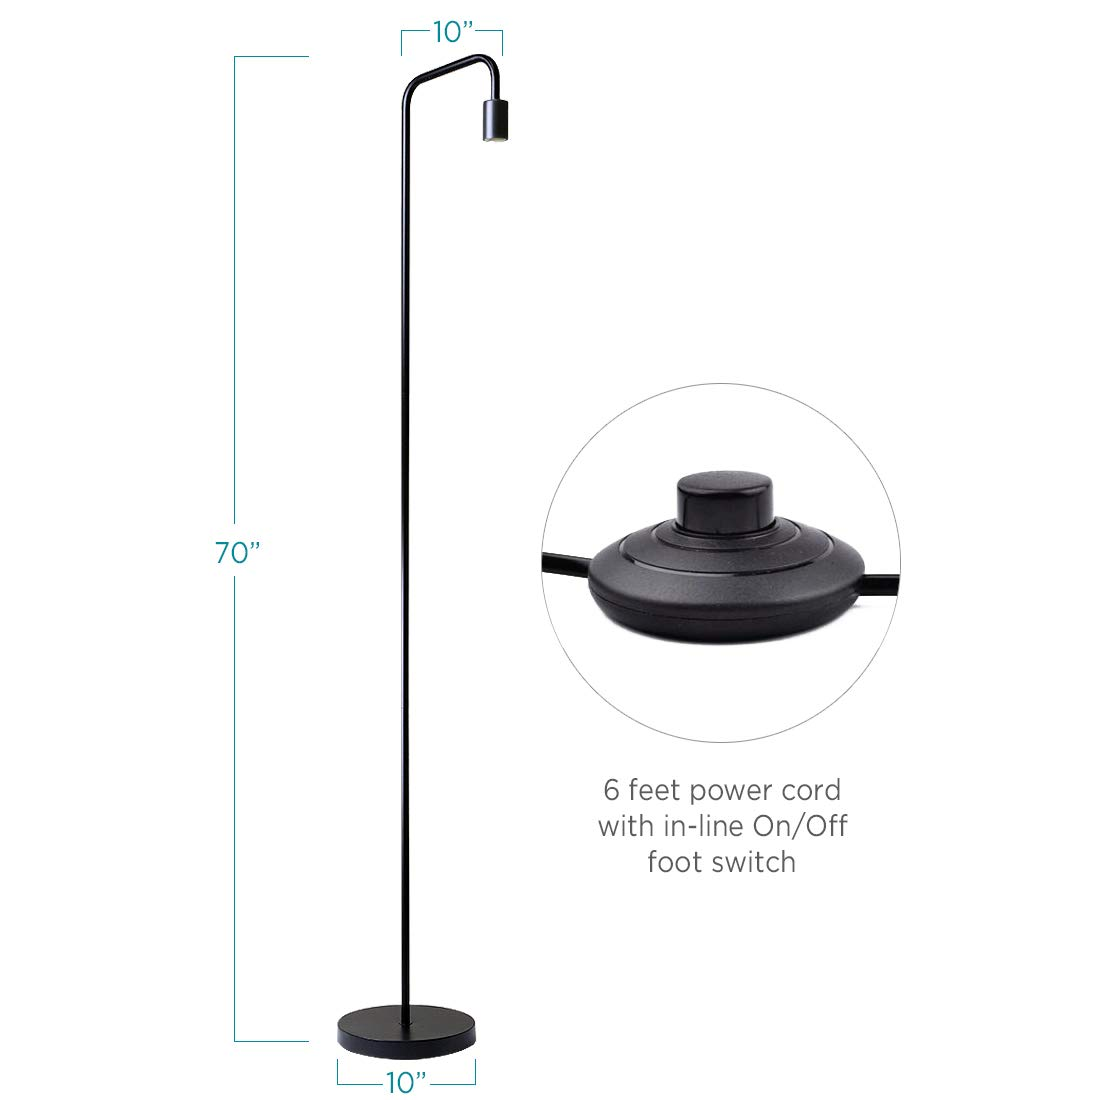 O'Bright Industrial Floor Lamp for Living Room, 100% Metal Lamp, UL Certified Ceramic E26 Socket, Minimalist Design for Decorative Lighting, Stand Lamp for Bedroom/Office/Dorm, ETL Listed, Black by O'Bright (Image #7)